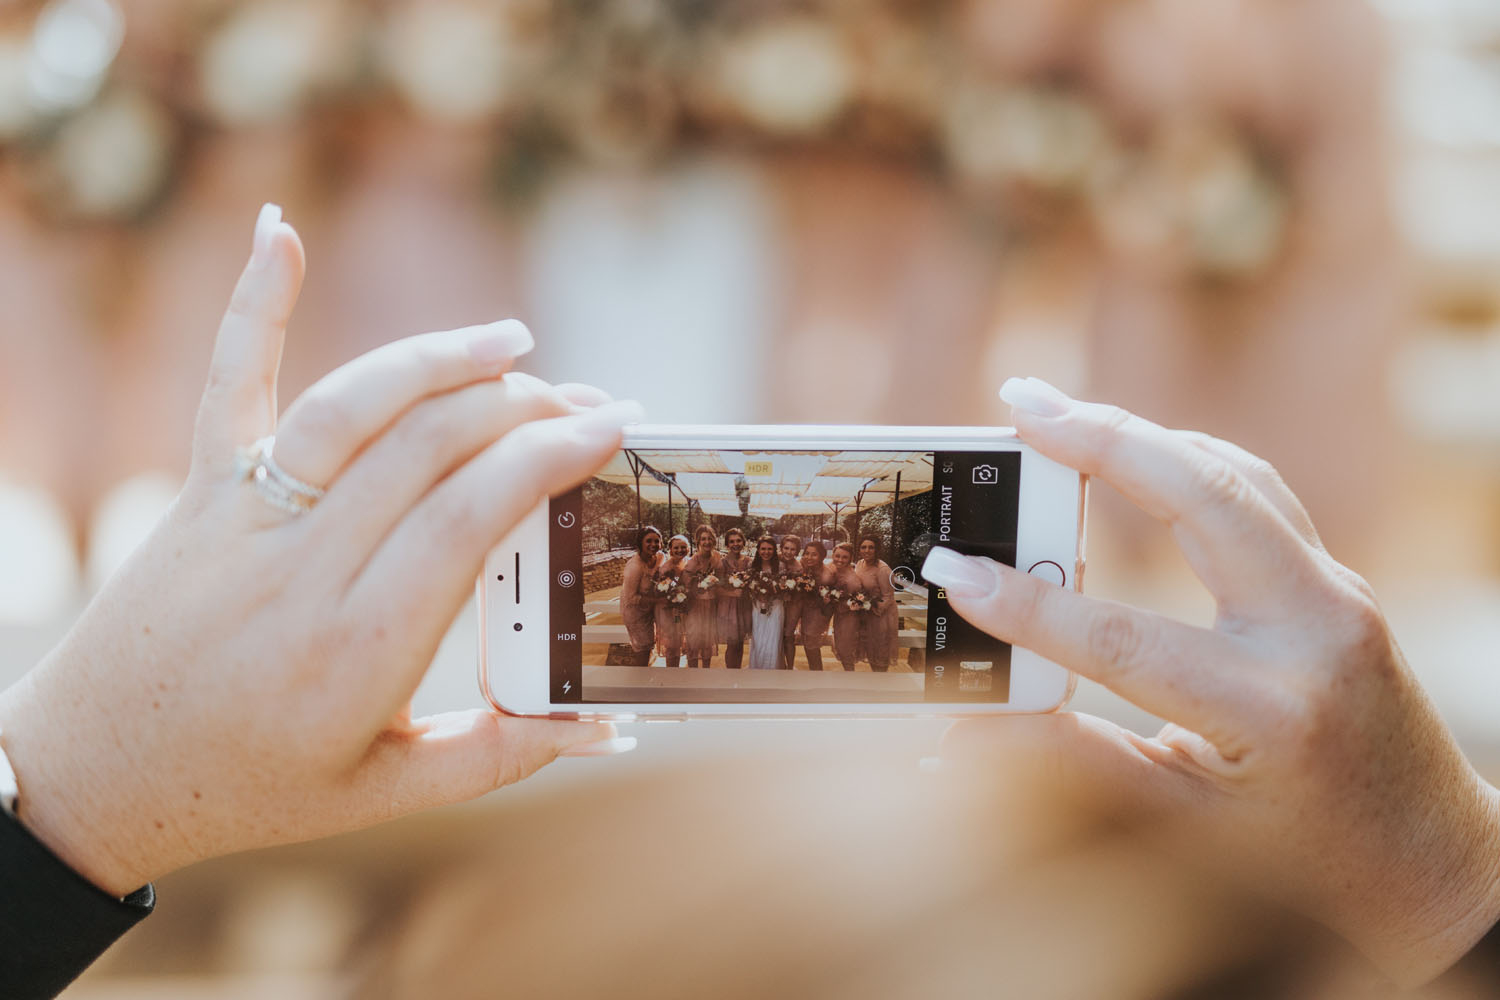 A woman's hands hold a cell phone and take a photo of a wedding